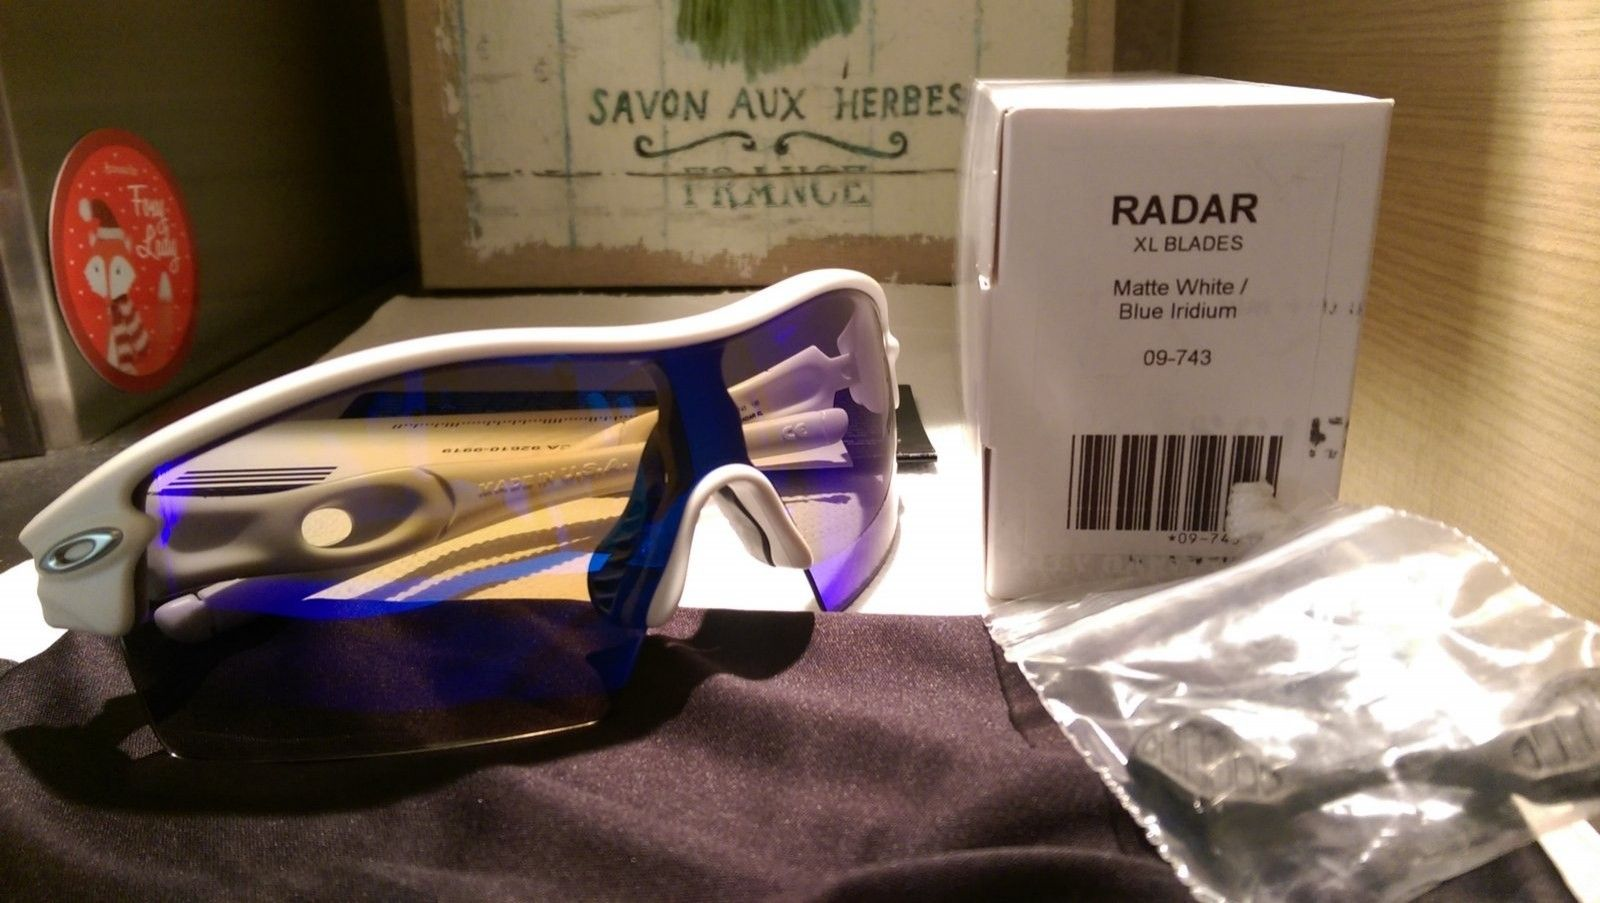 Oakley Radar XL matte white with Blue iridium 09-743 NEW - IMAG6175.jpg